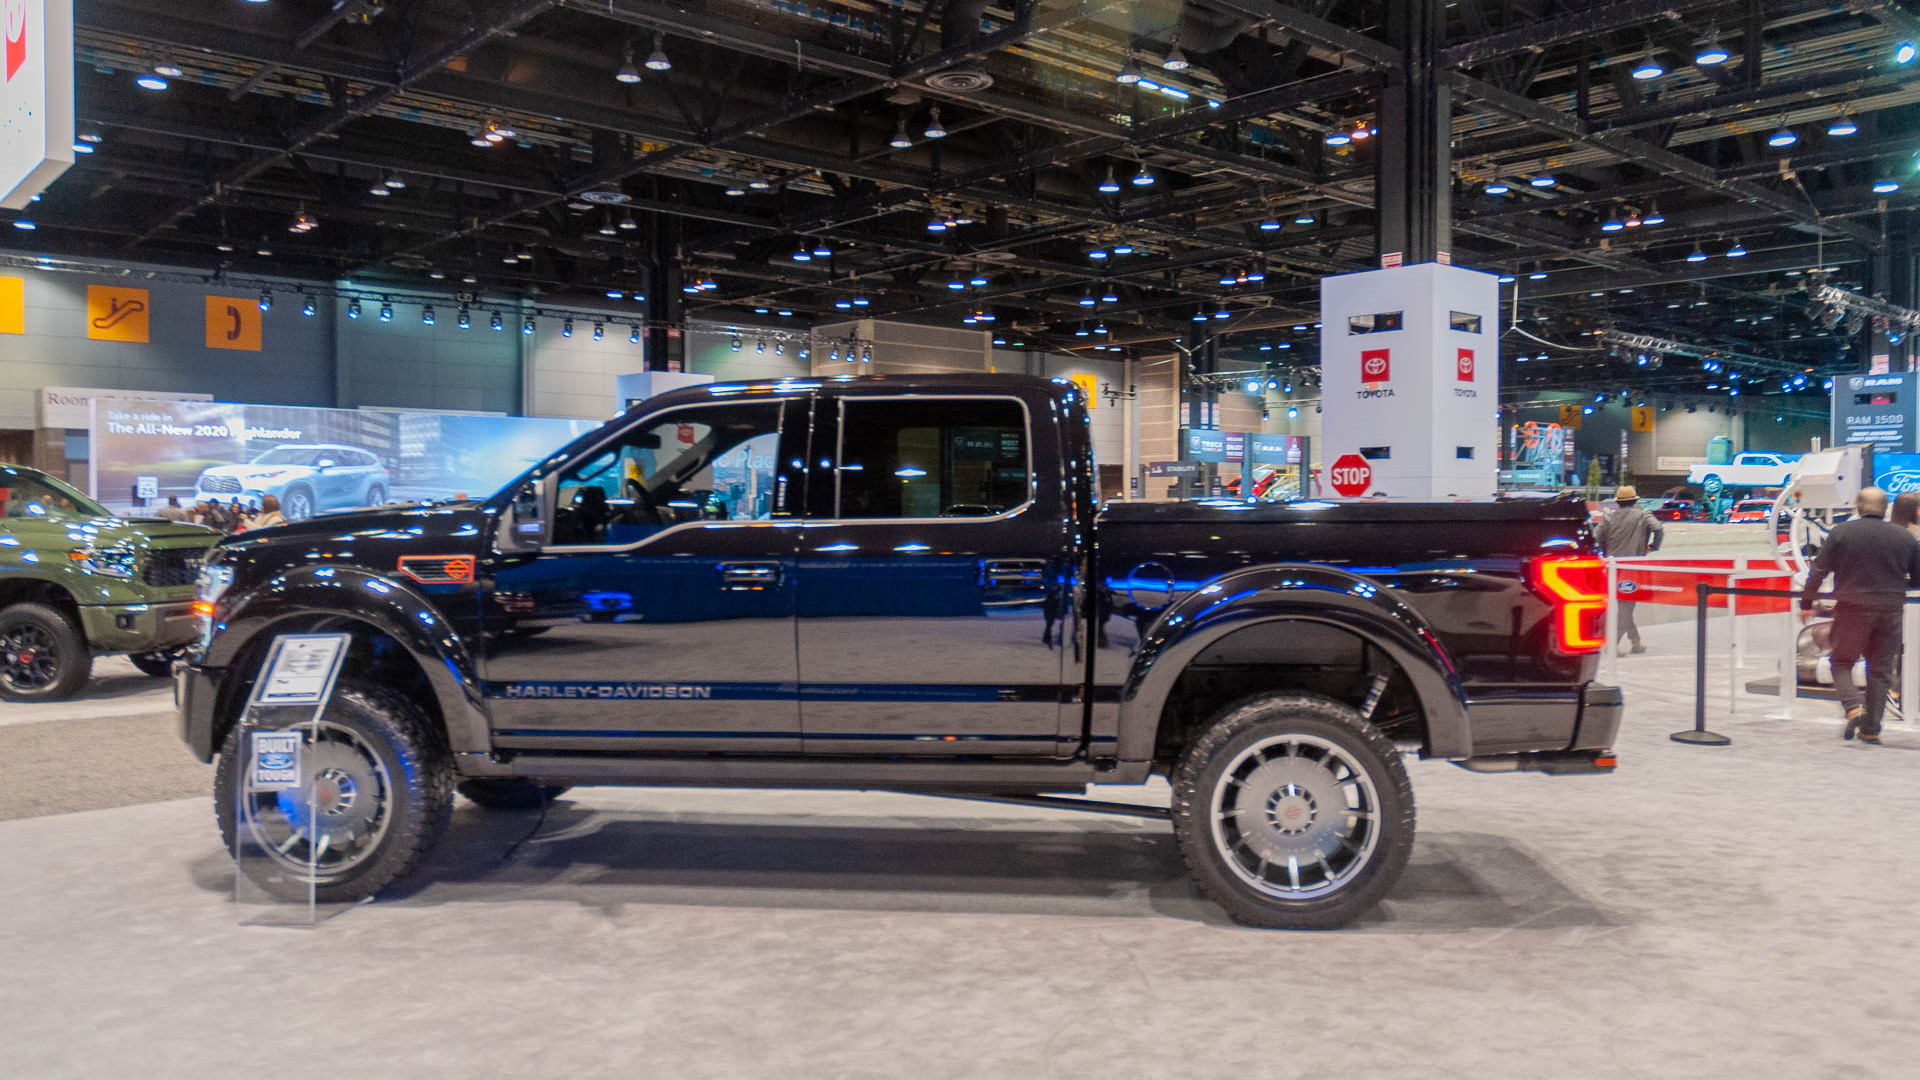 2020 Ford F-150 Harley-Davidson by Tuscany Motors, 2020 Chicago Auto Show